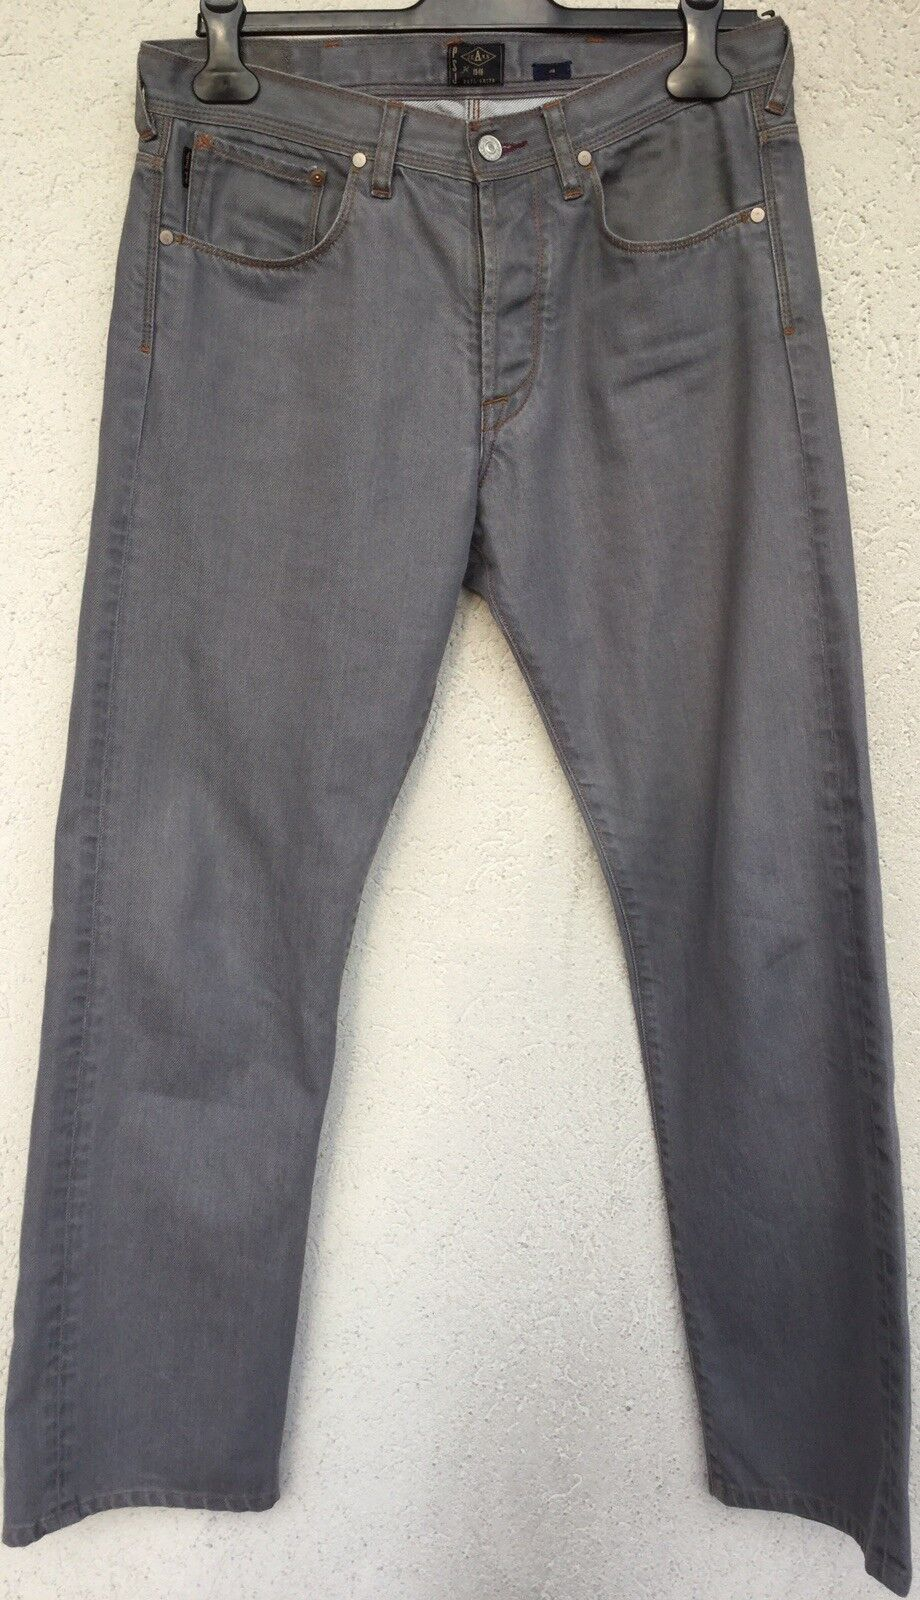 BNWOT Paul Smith superb grey cotton twill jeans with detail in 32in 81 cm waist